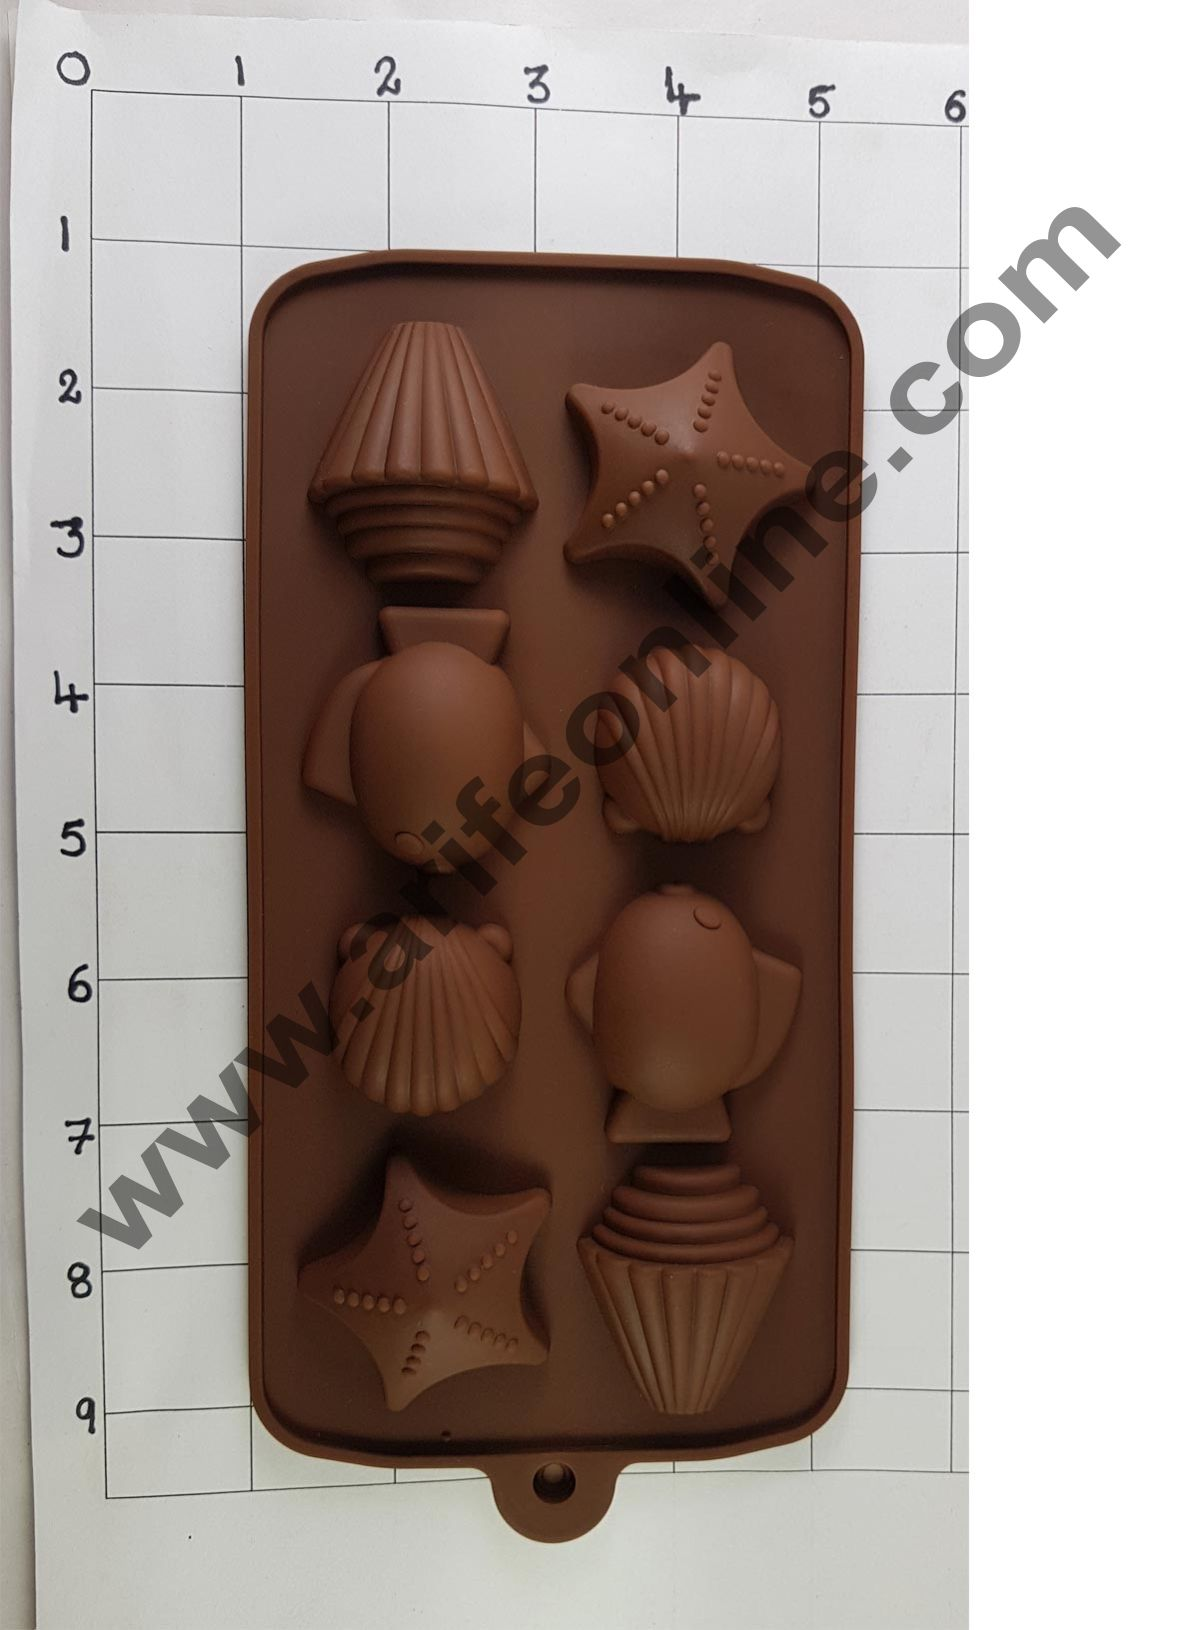 Cake Decor Silicon 8 Cavity Star N Shell Brown Chocolate Mould, Ice Mould, Chocolate Decorating Mould